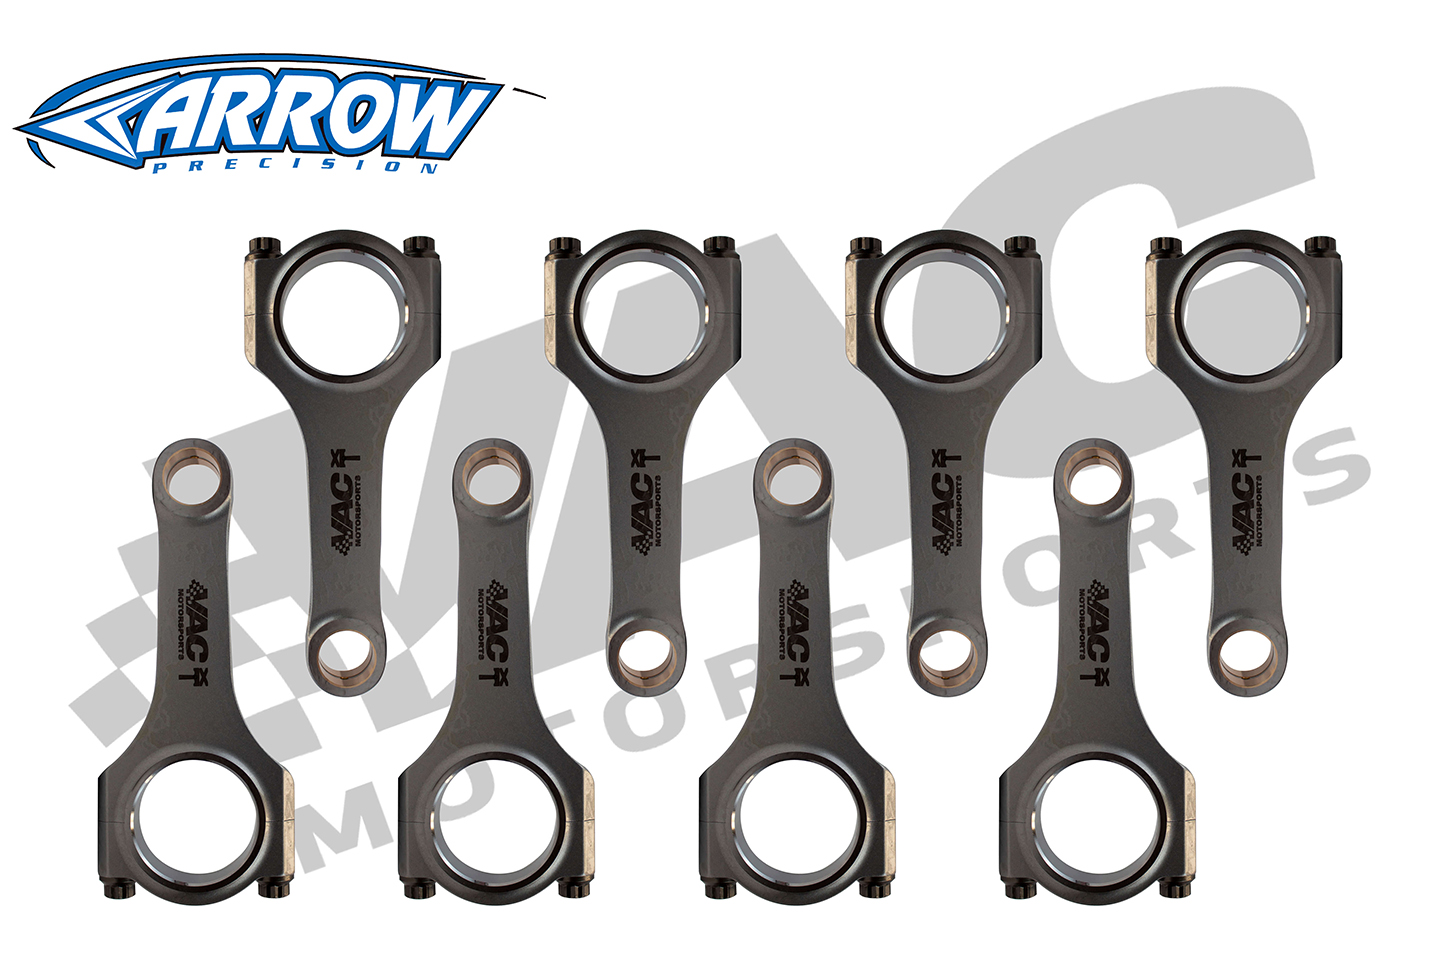 VAC PRO-XTREME Forged Connecting Rods By Arrow, BMW N63/S63 MAIN